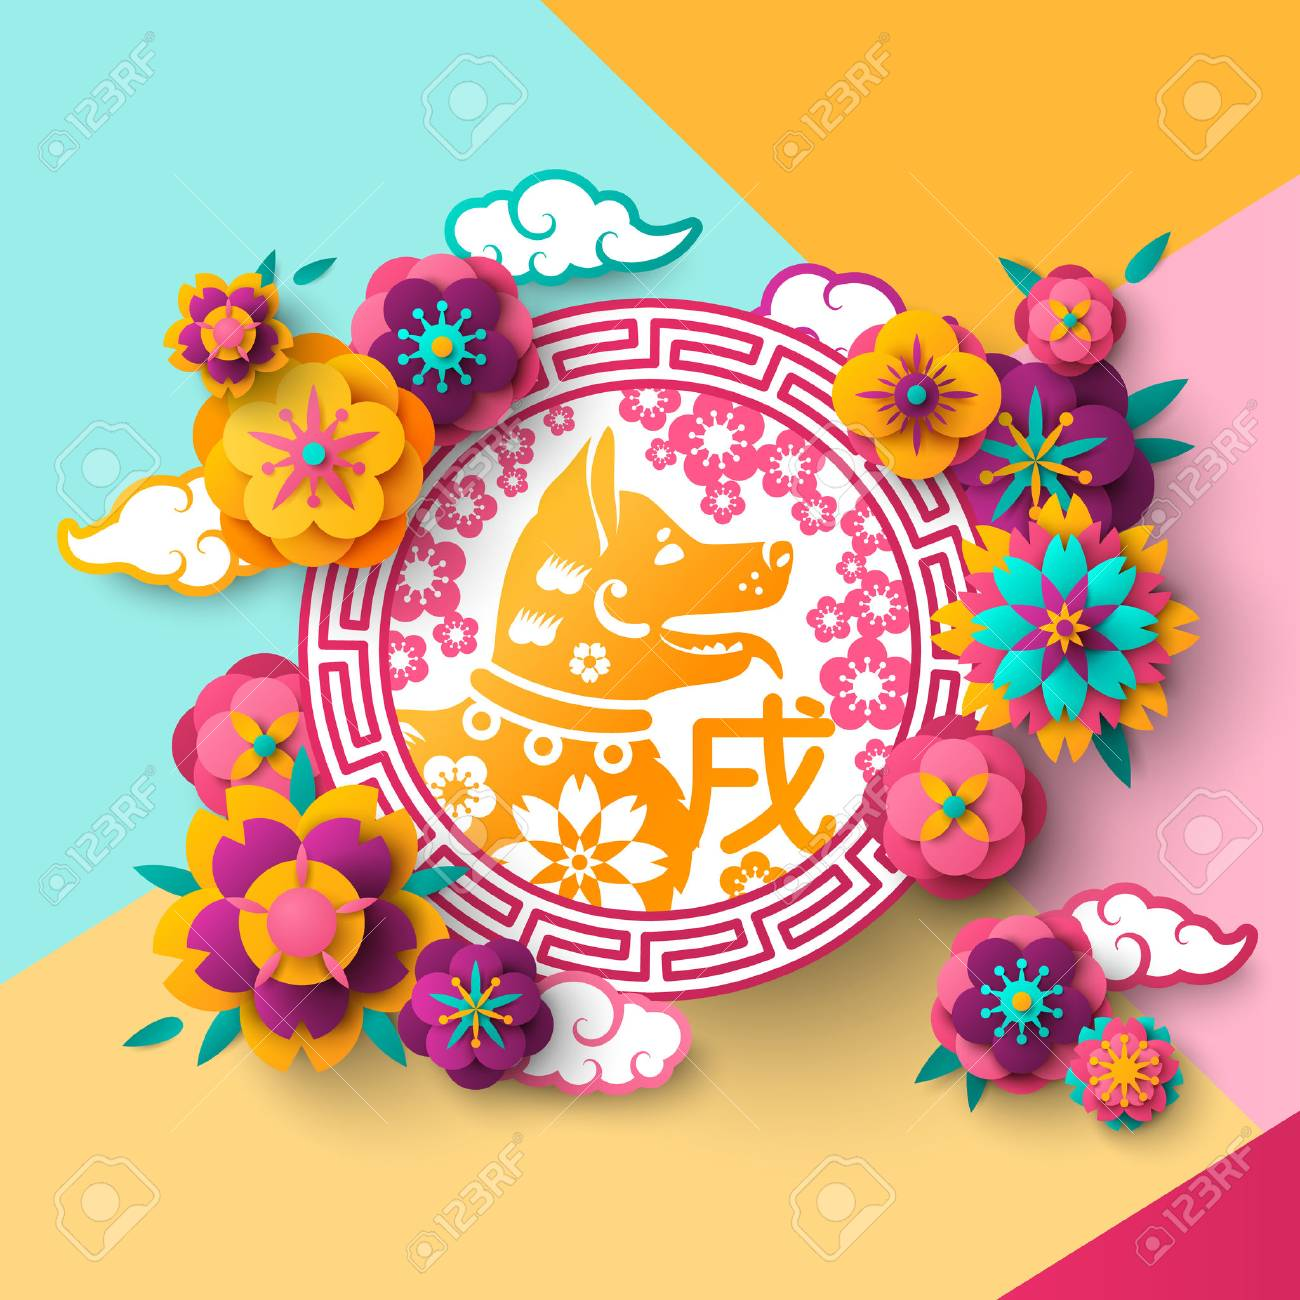 chinese new year greeting card with dog emblem stock vector 89177712 - Chinese New Year Greeting